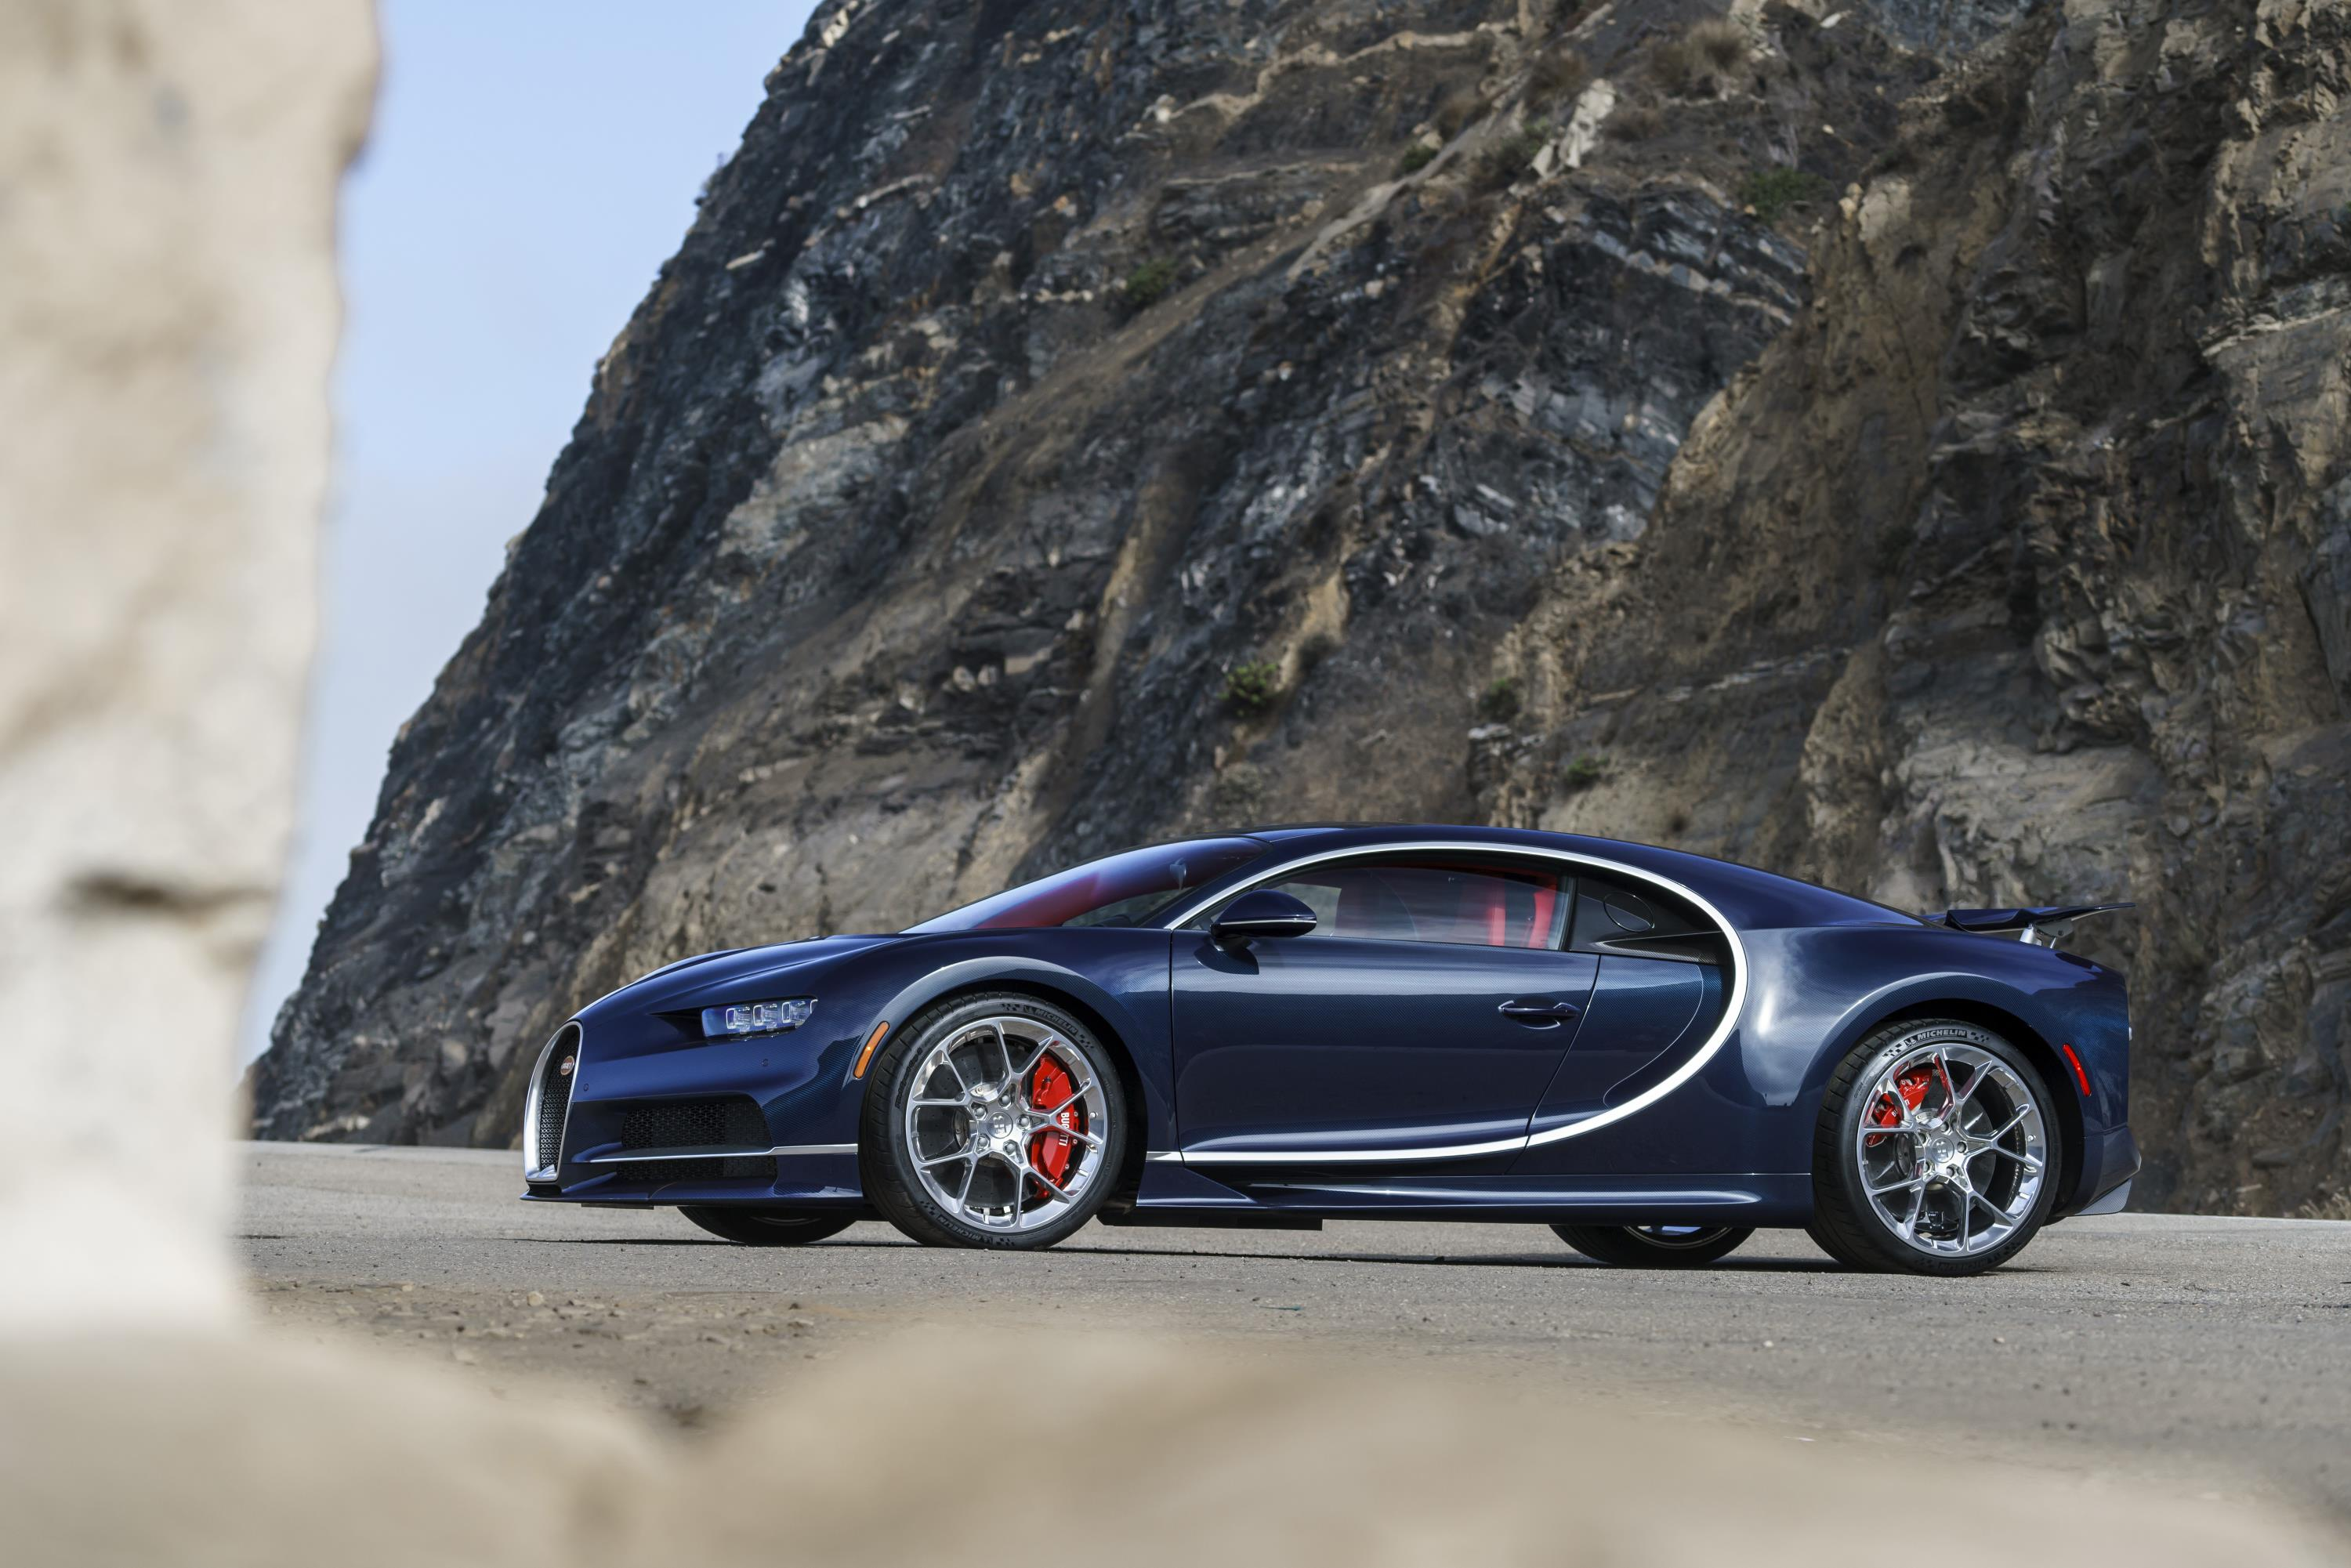 bugatti chiron gas mileage is bad, but not veyron bad - autoevolution